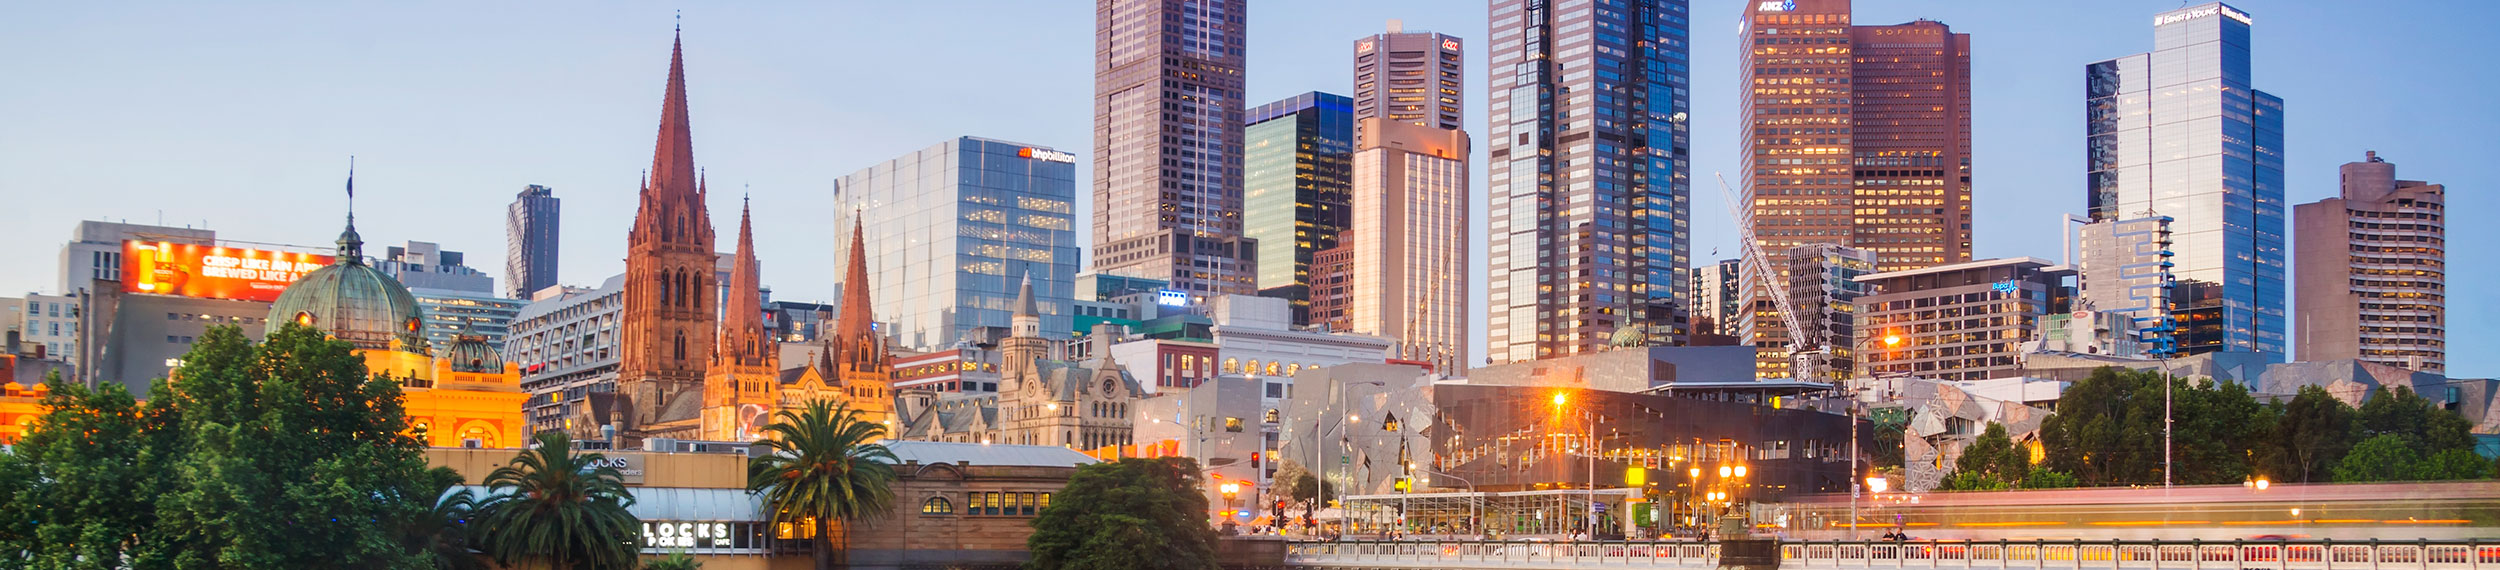 View of Yarra river and skyline at dusk in Melbourne, Australia.